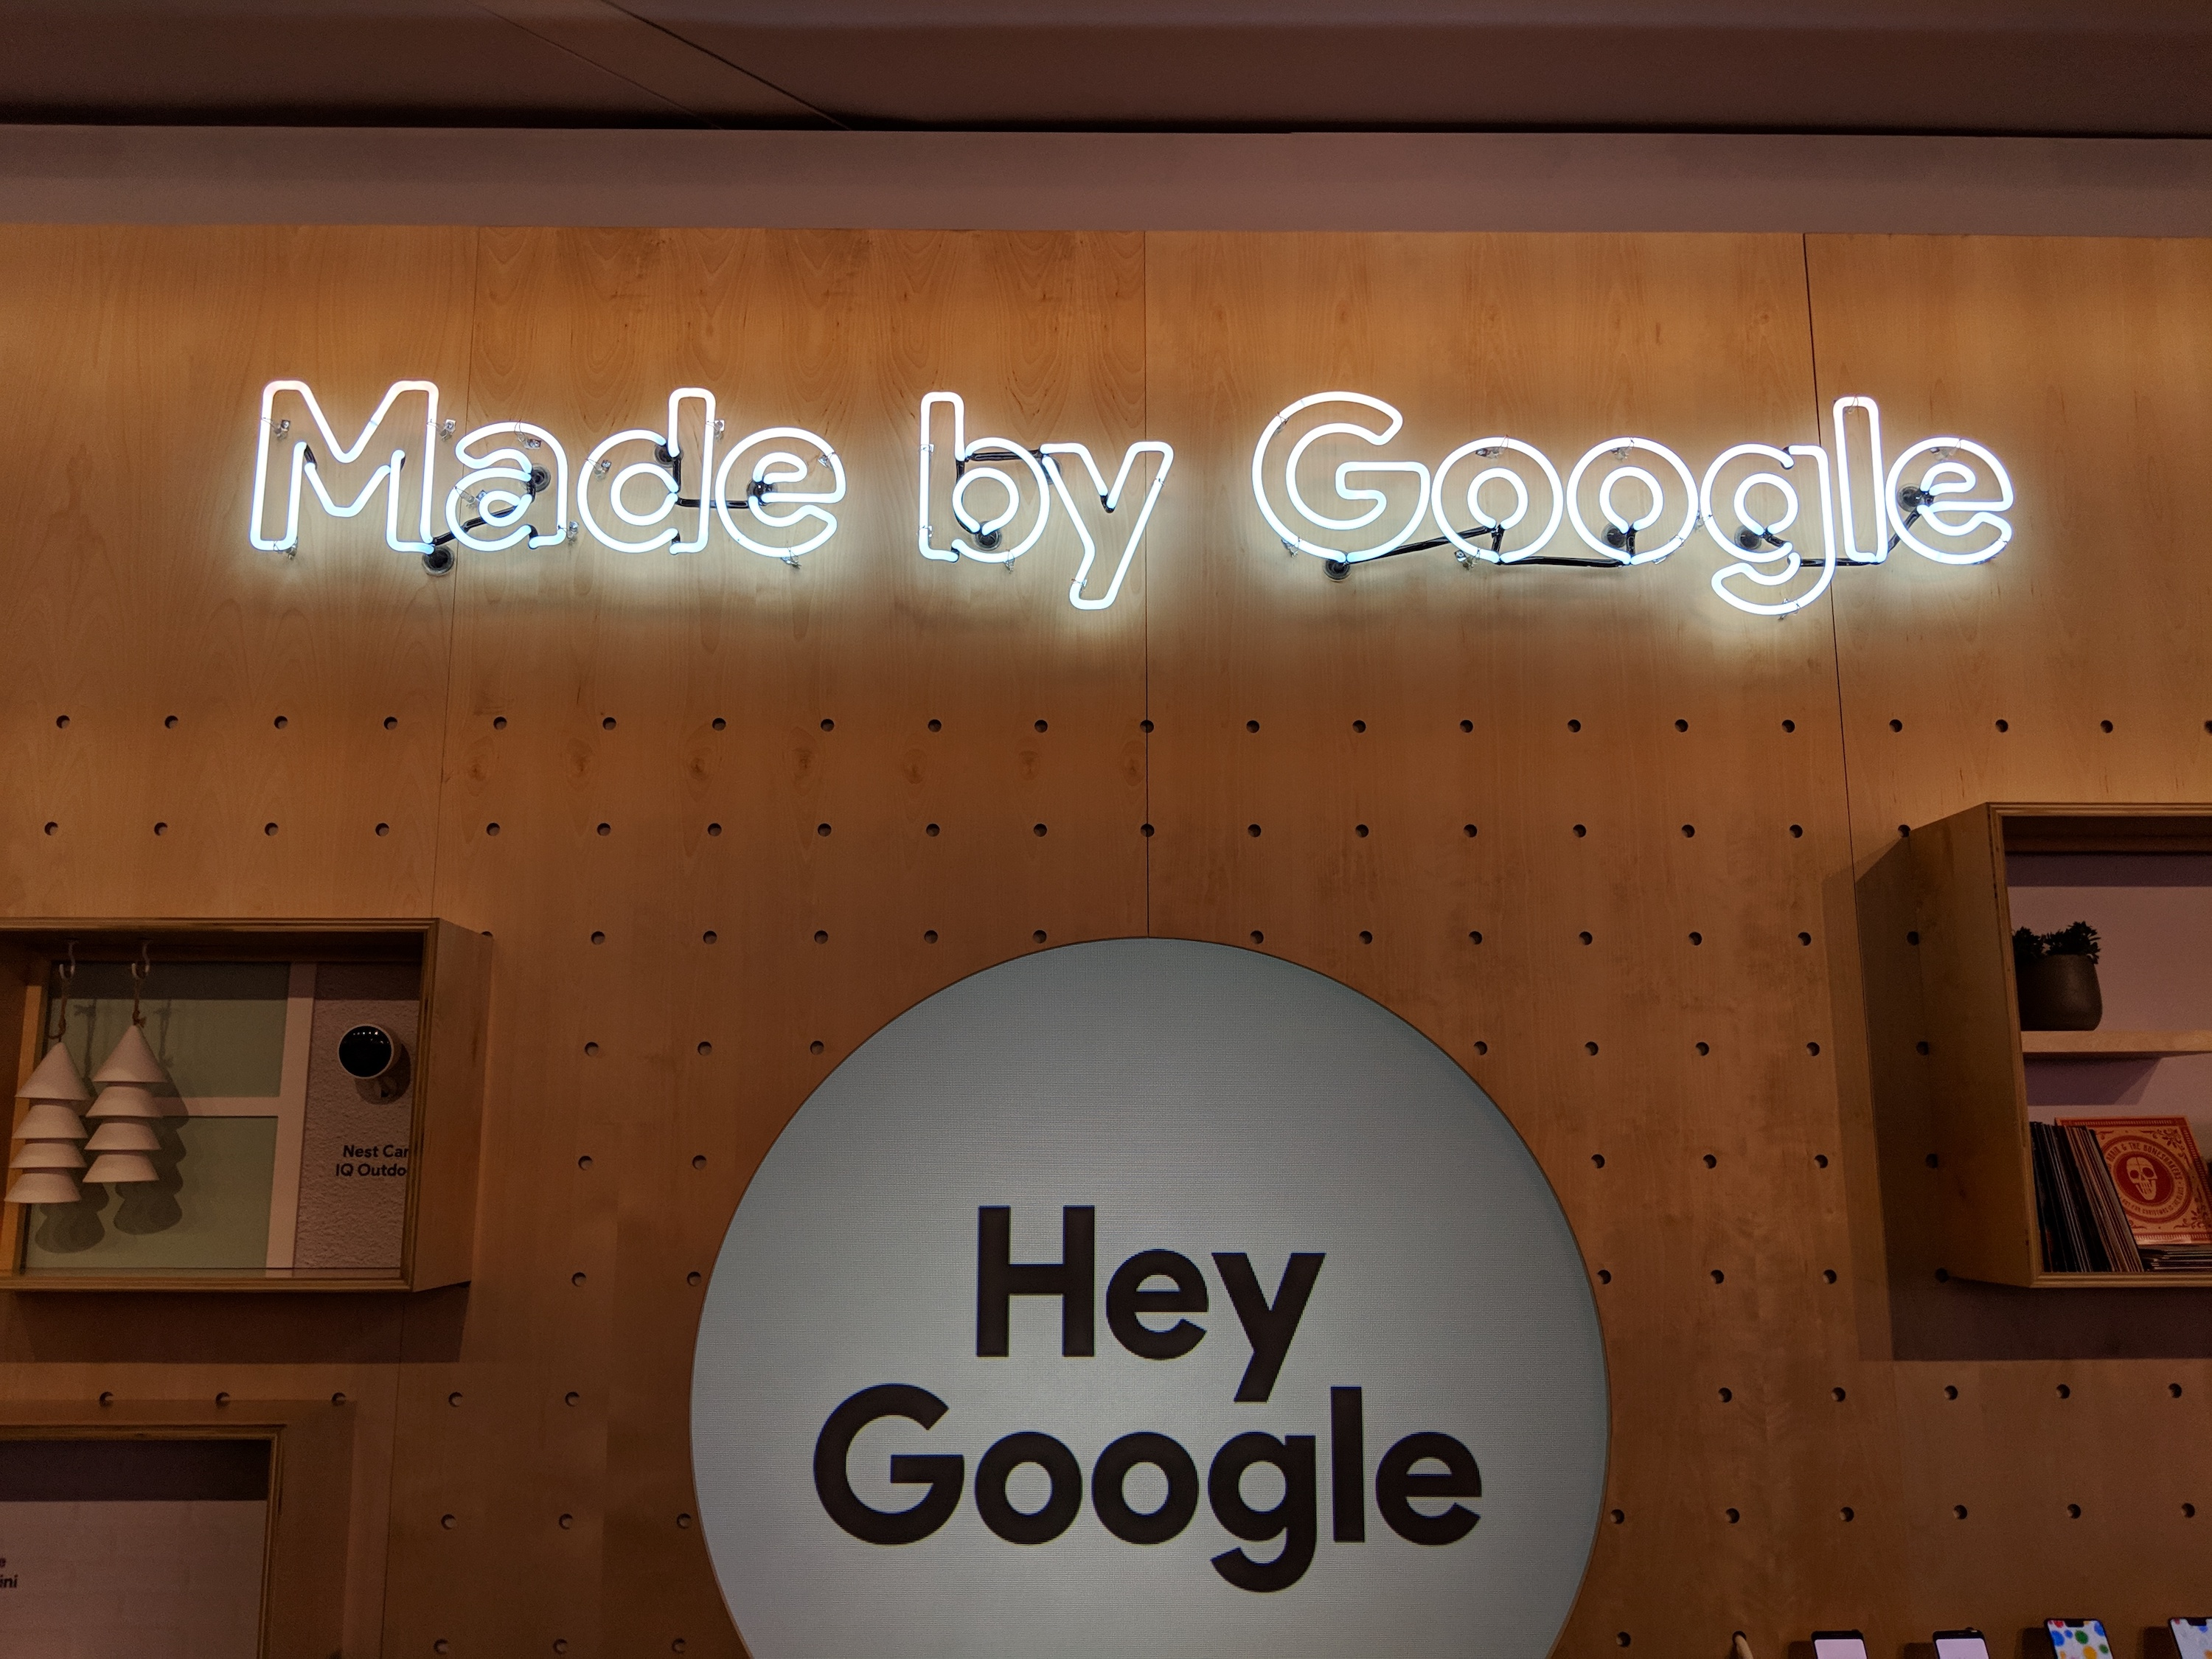 Hey Google display at CES 2019